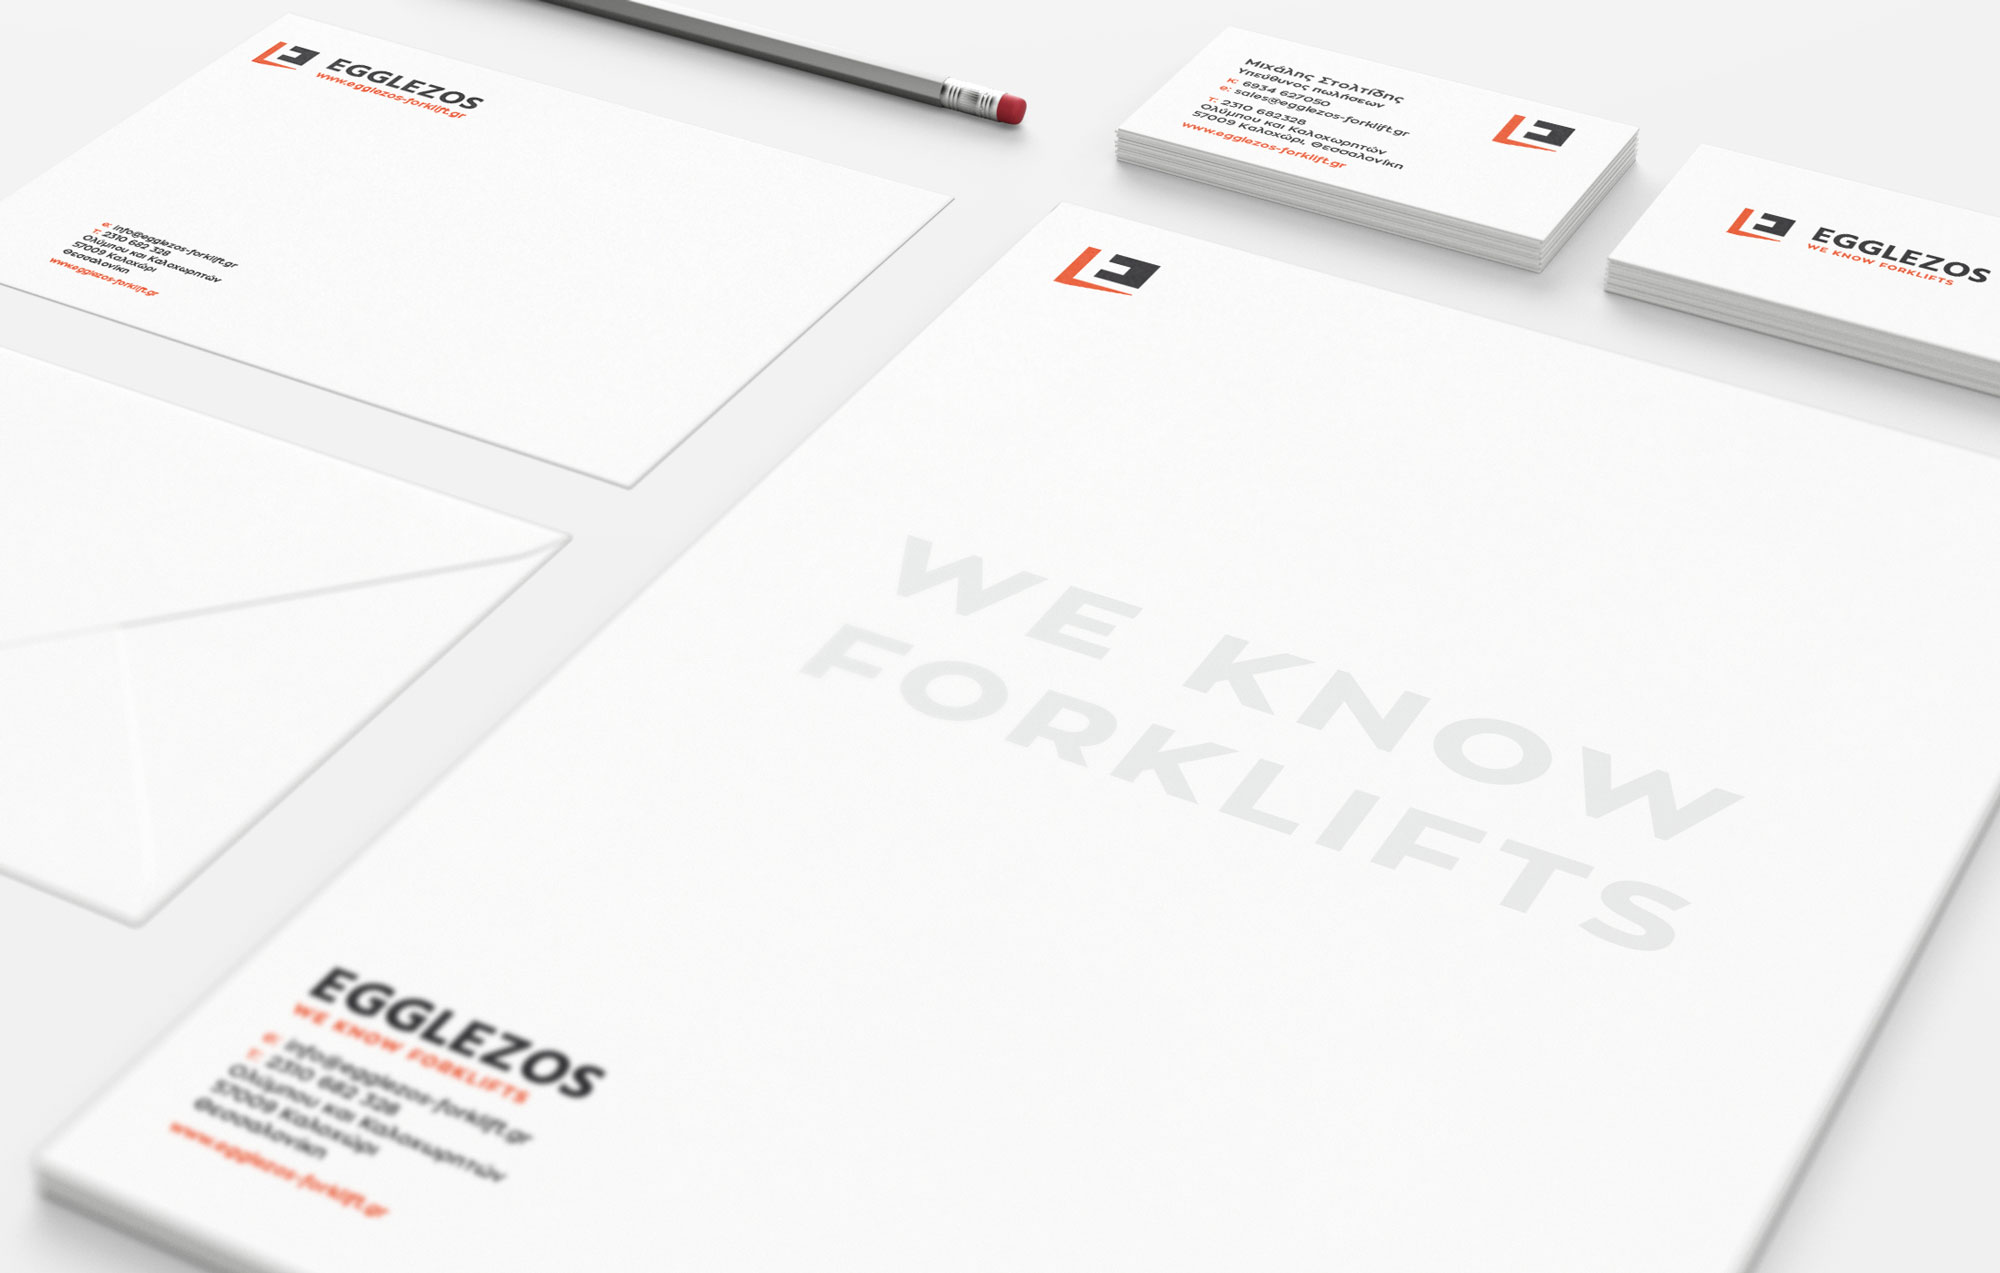 corporate identity with branding elements on letterhead and business cards